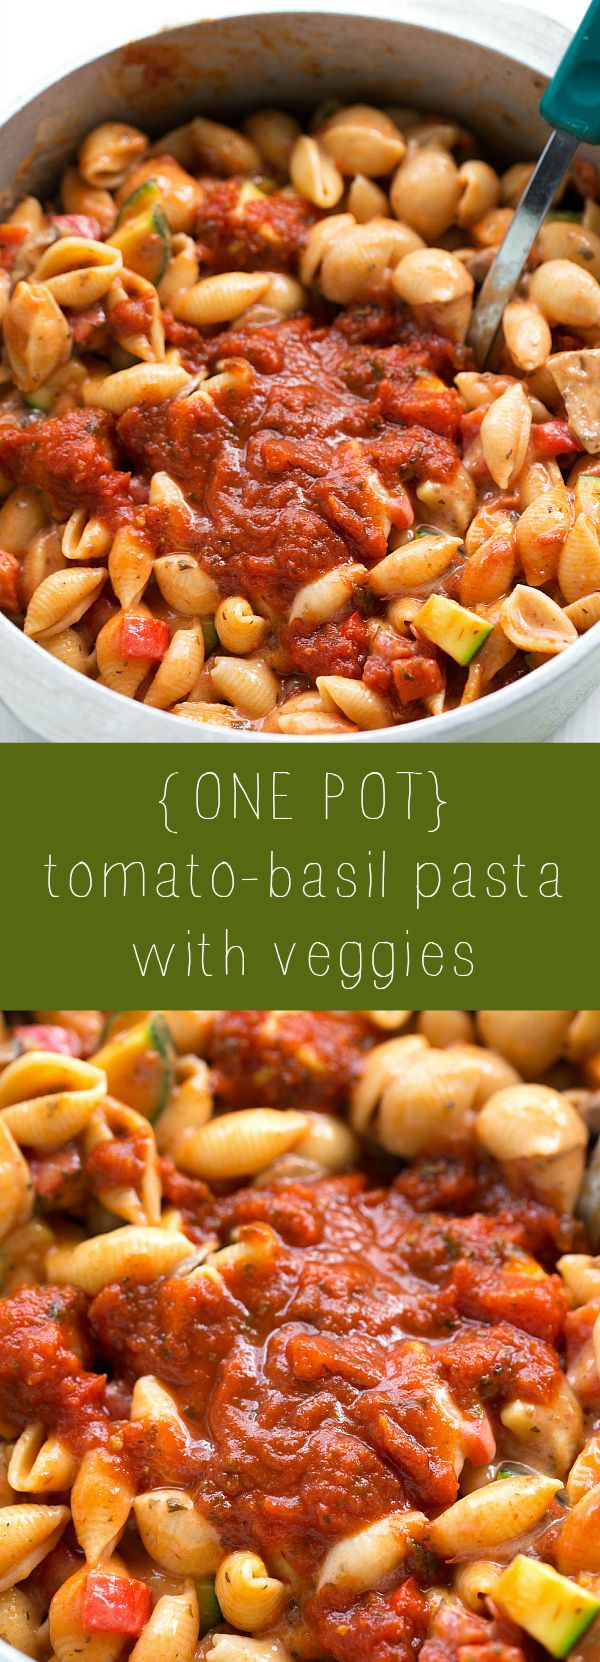 The easiest one pot tomato-basil pasta with veggies! This pasta uses the delicious Bertolli® Tomato & Basil sauce with the most authentic and delicious tomato basil sauce! @Bertolli